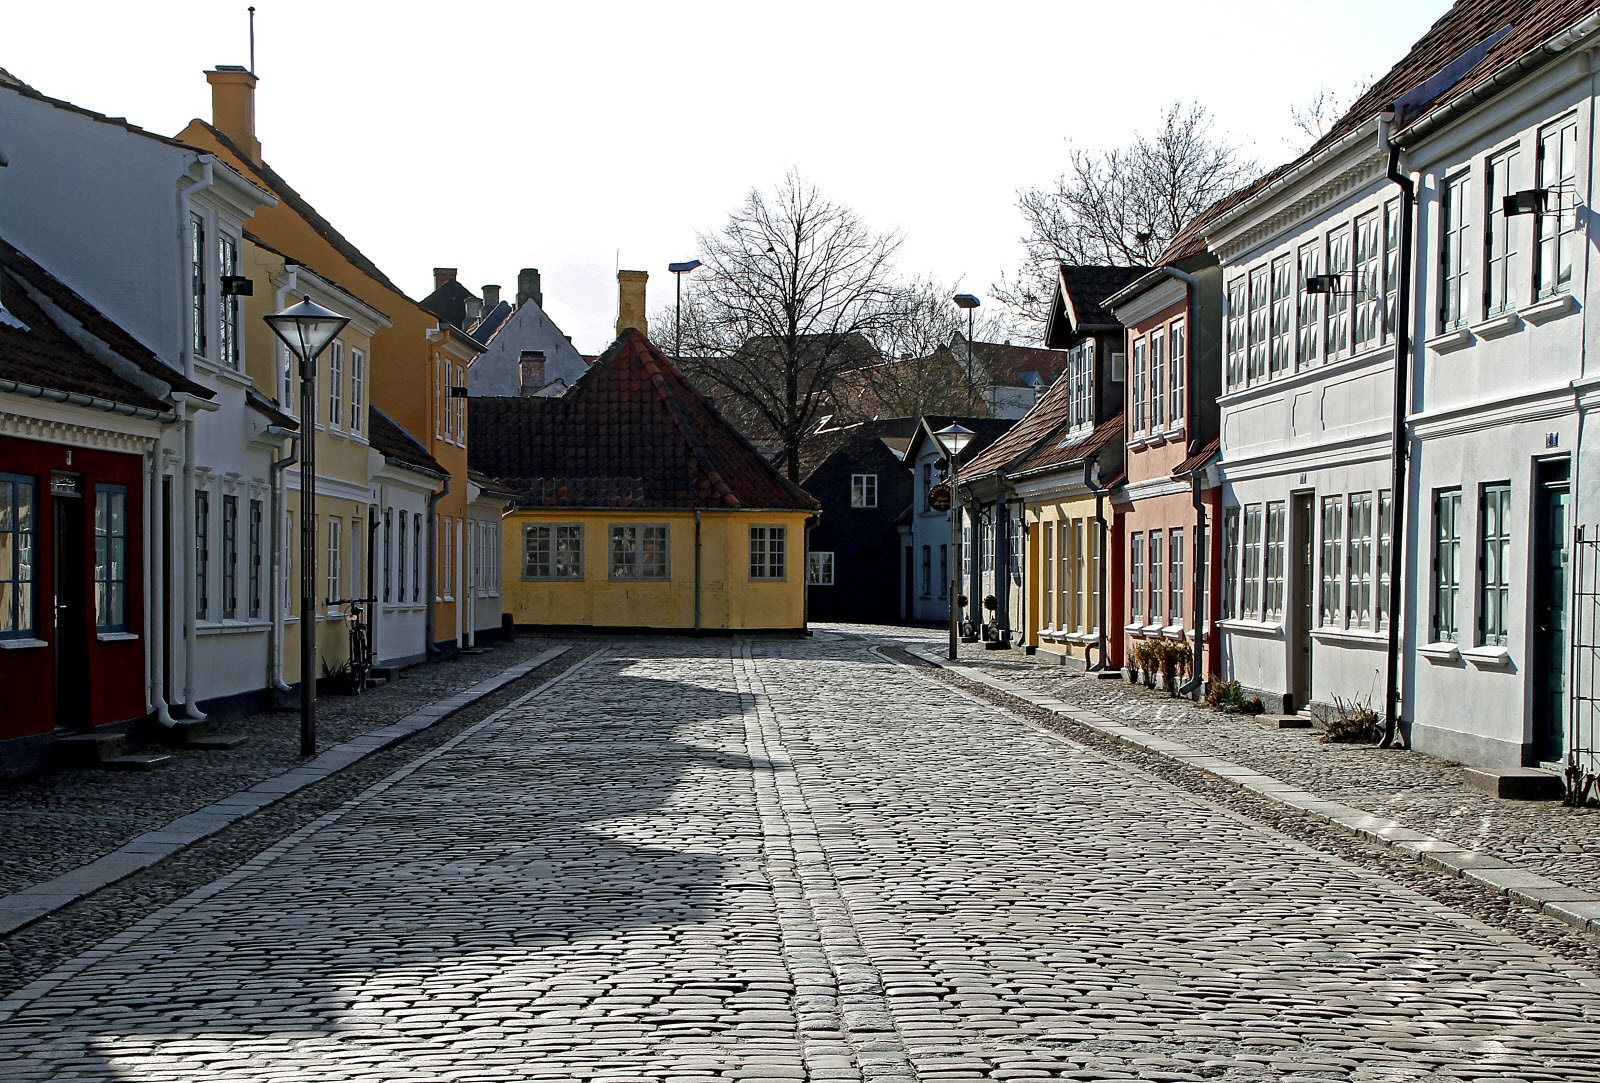 forlystelser odense odense gamle by